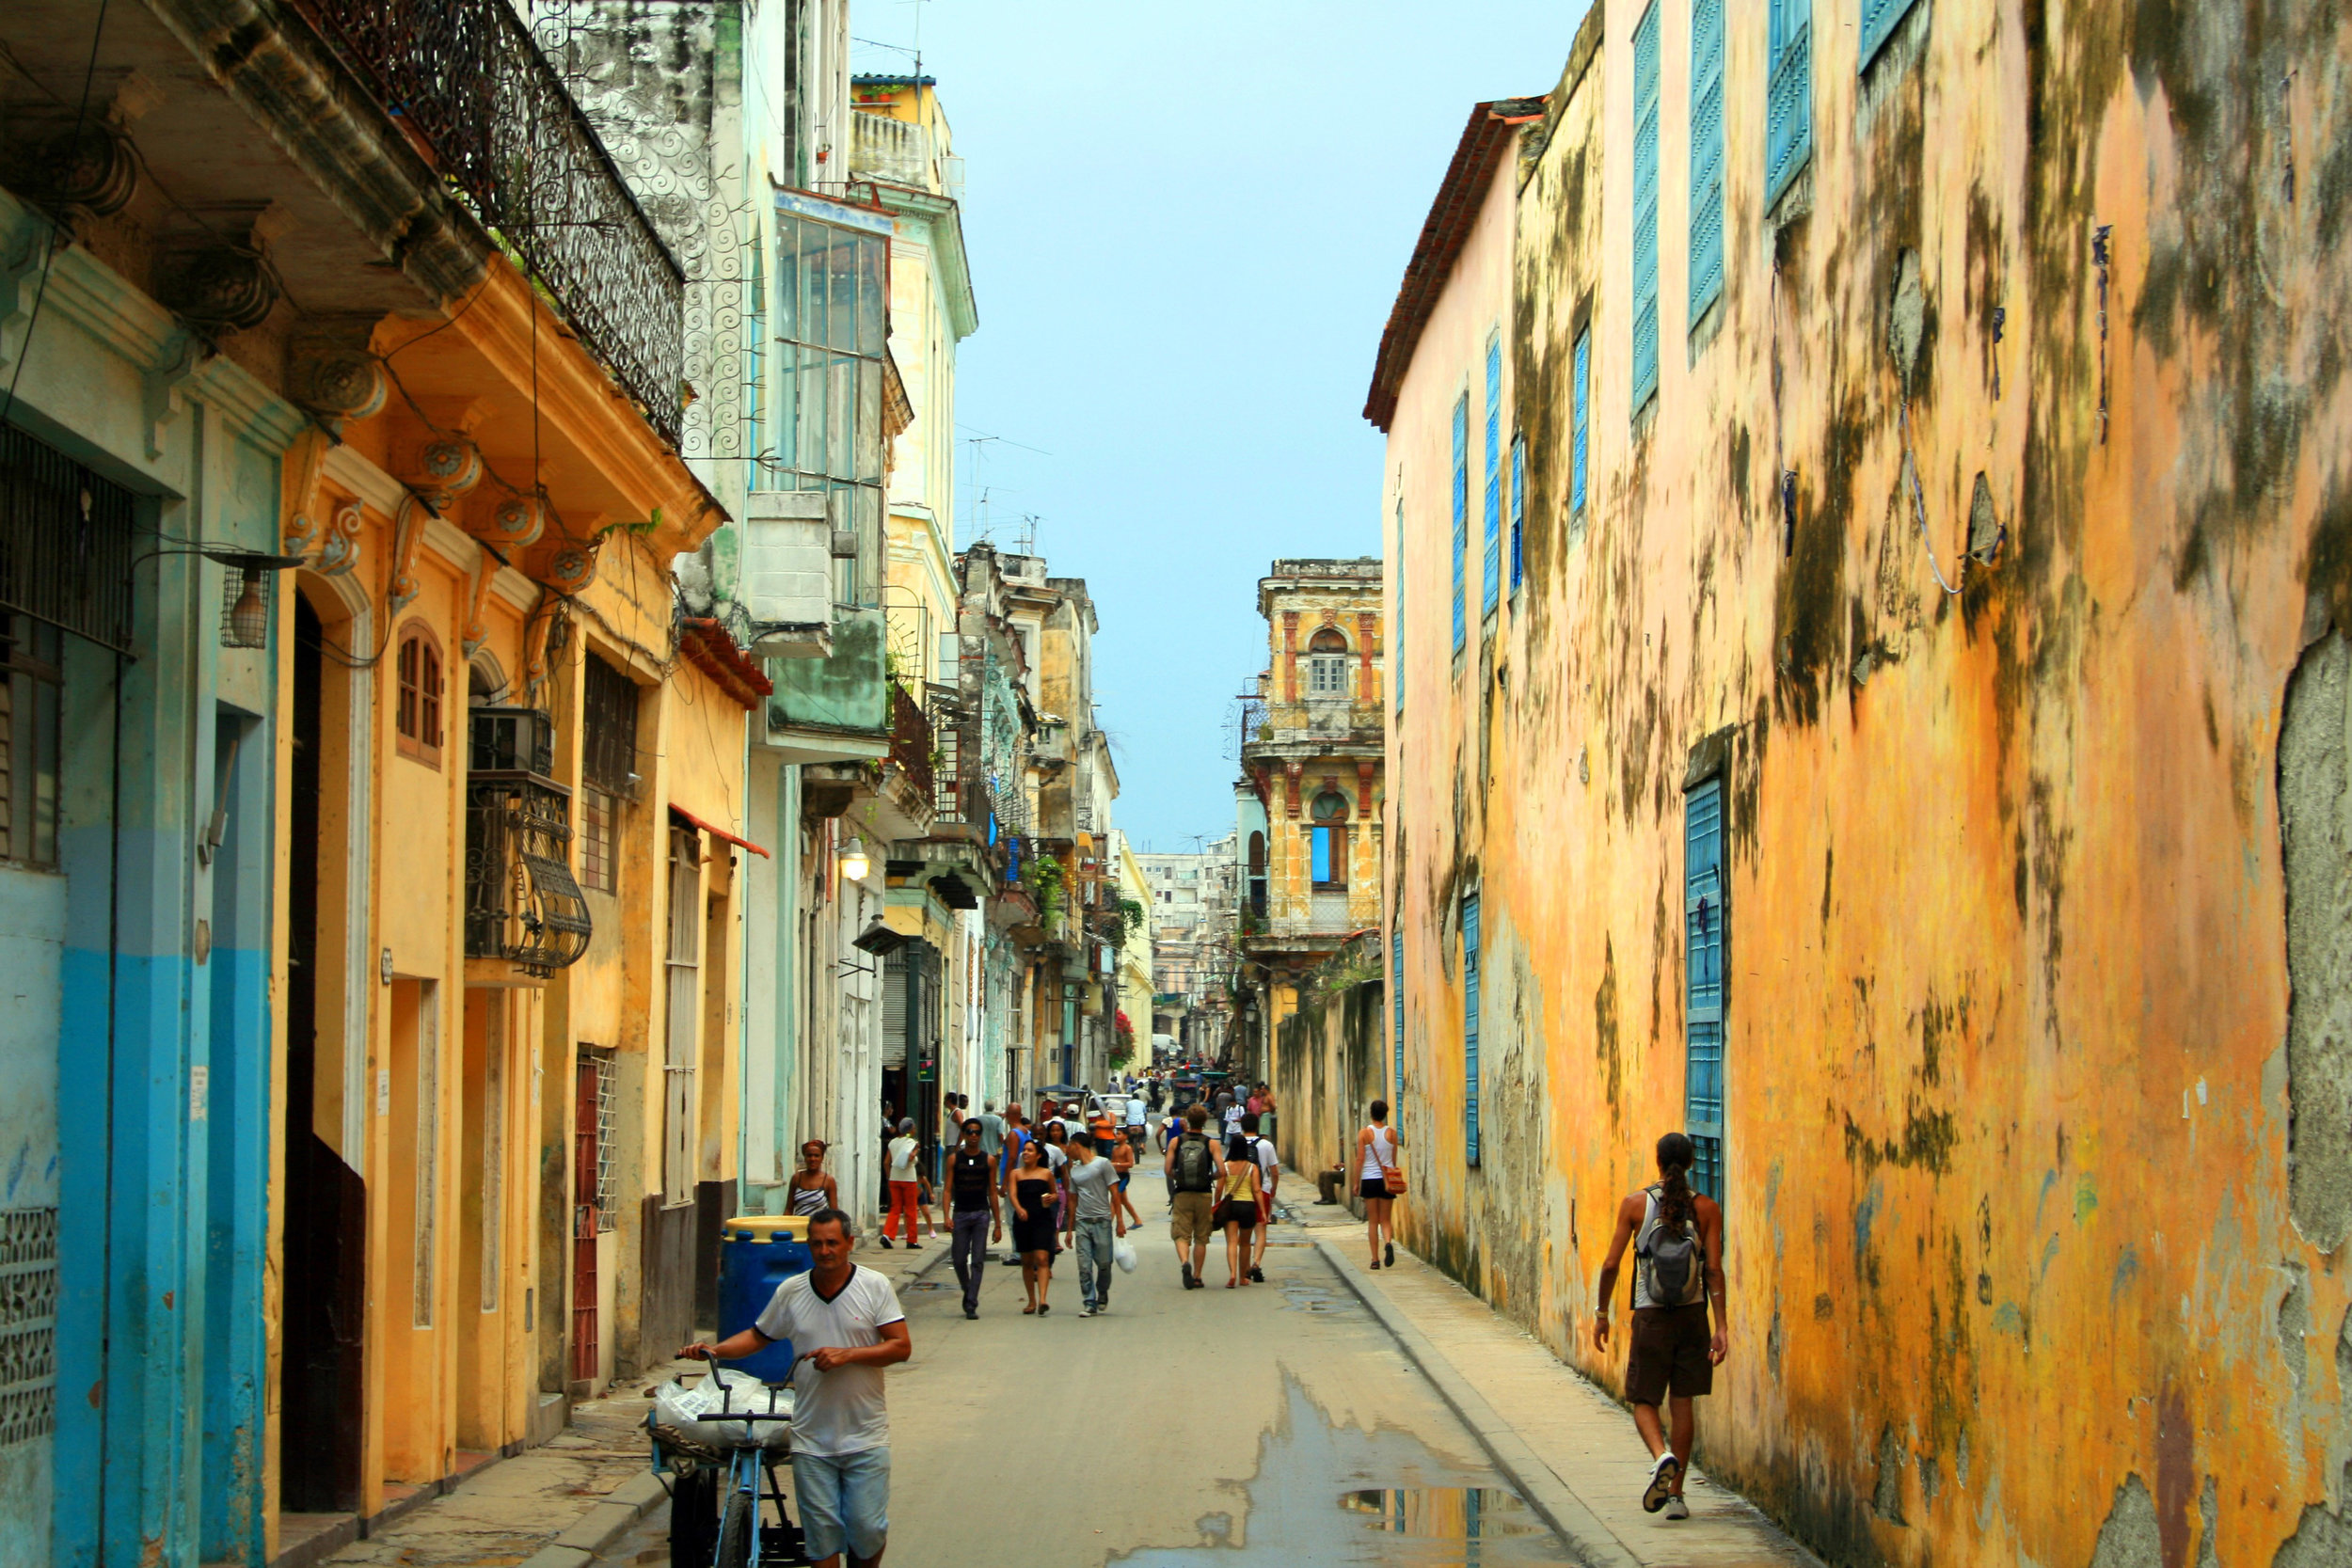 streets-with-people-in-havana-cuba.jpg